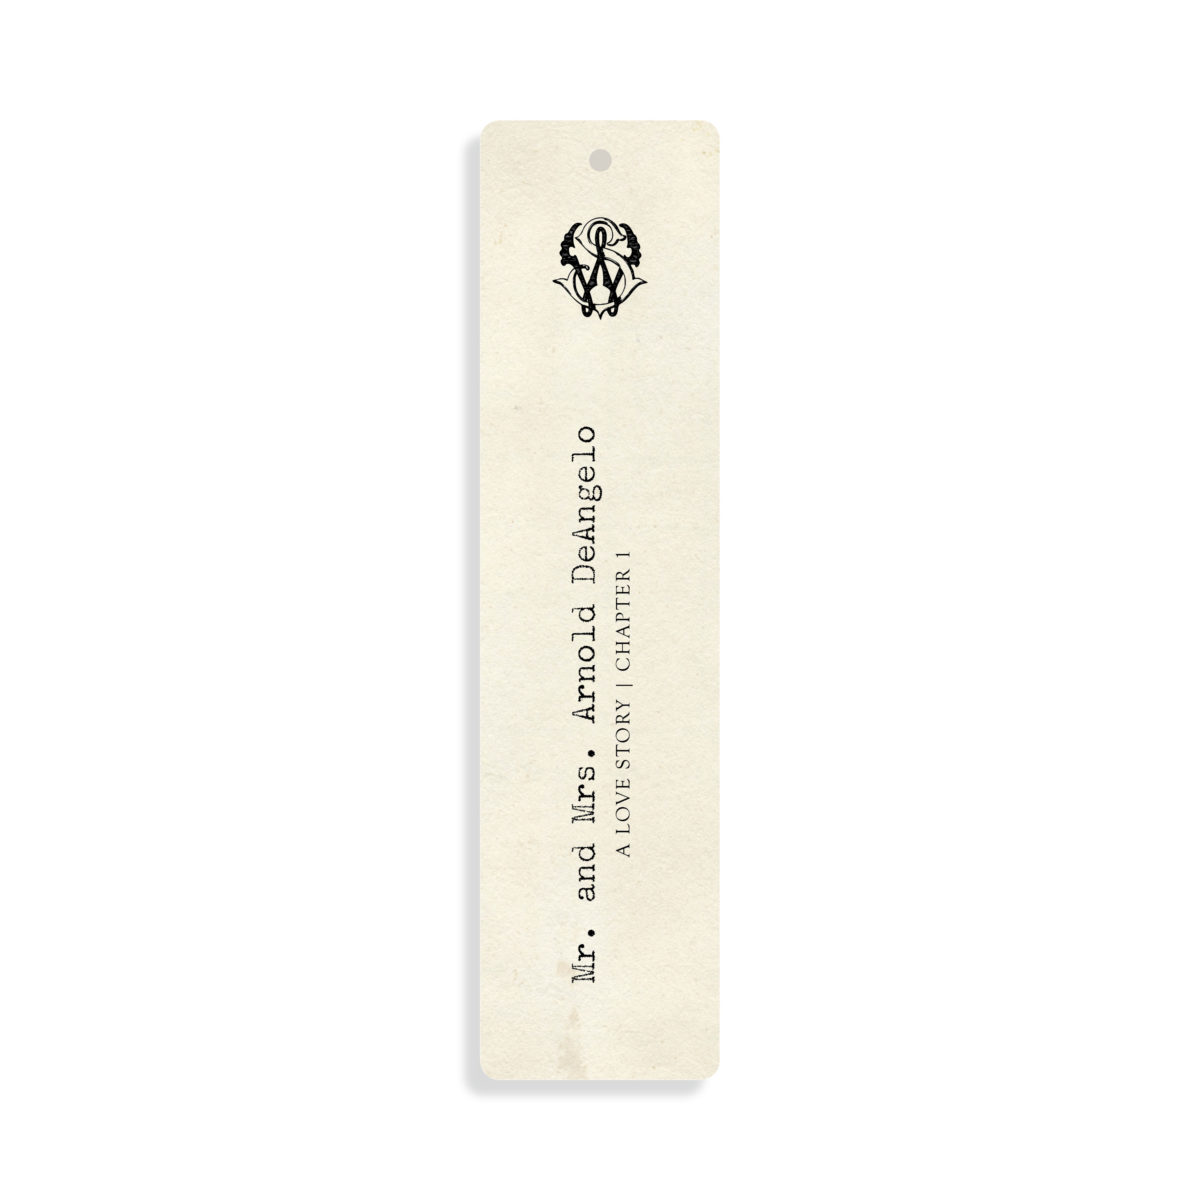 Bookmark Place Card for Literary Wedding or Literary theme party | By Posted Fete | #Literarywedding #LiteraryTheme #Wedding